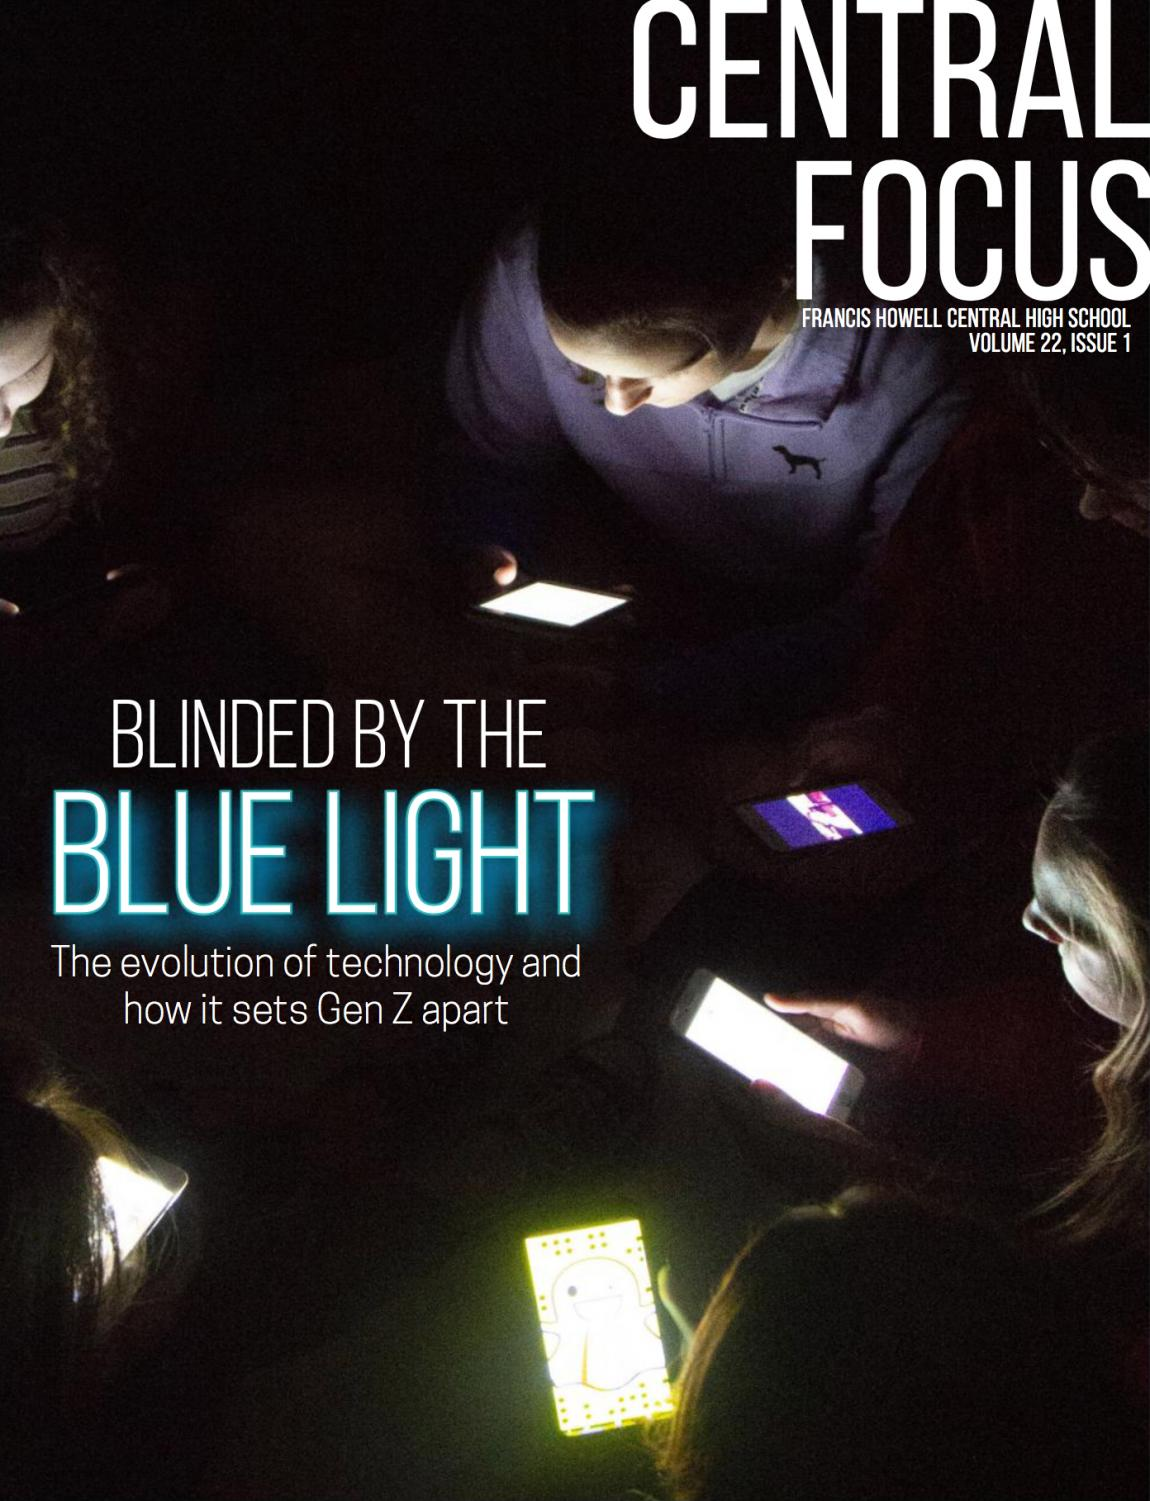 September 2018 issue: Blinded by the Blue Light